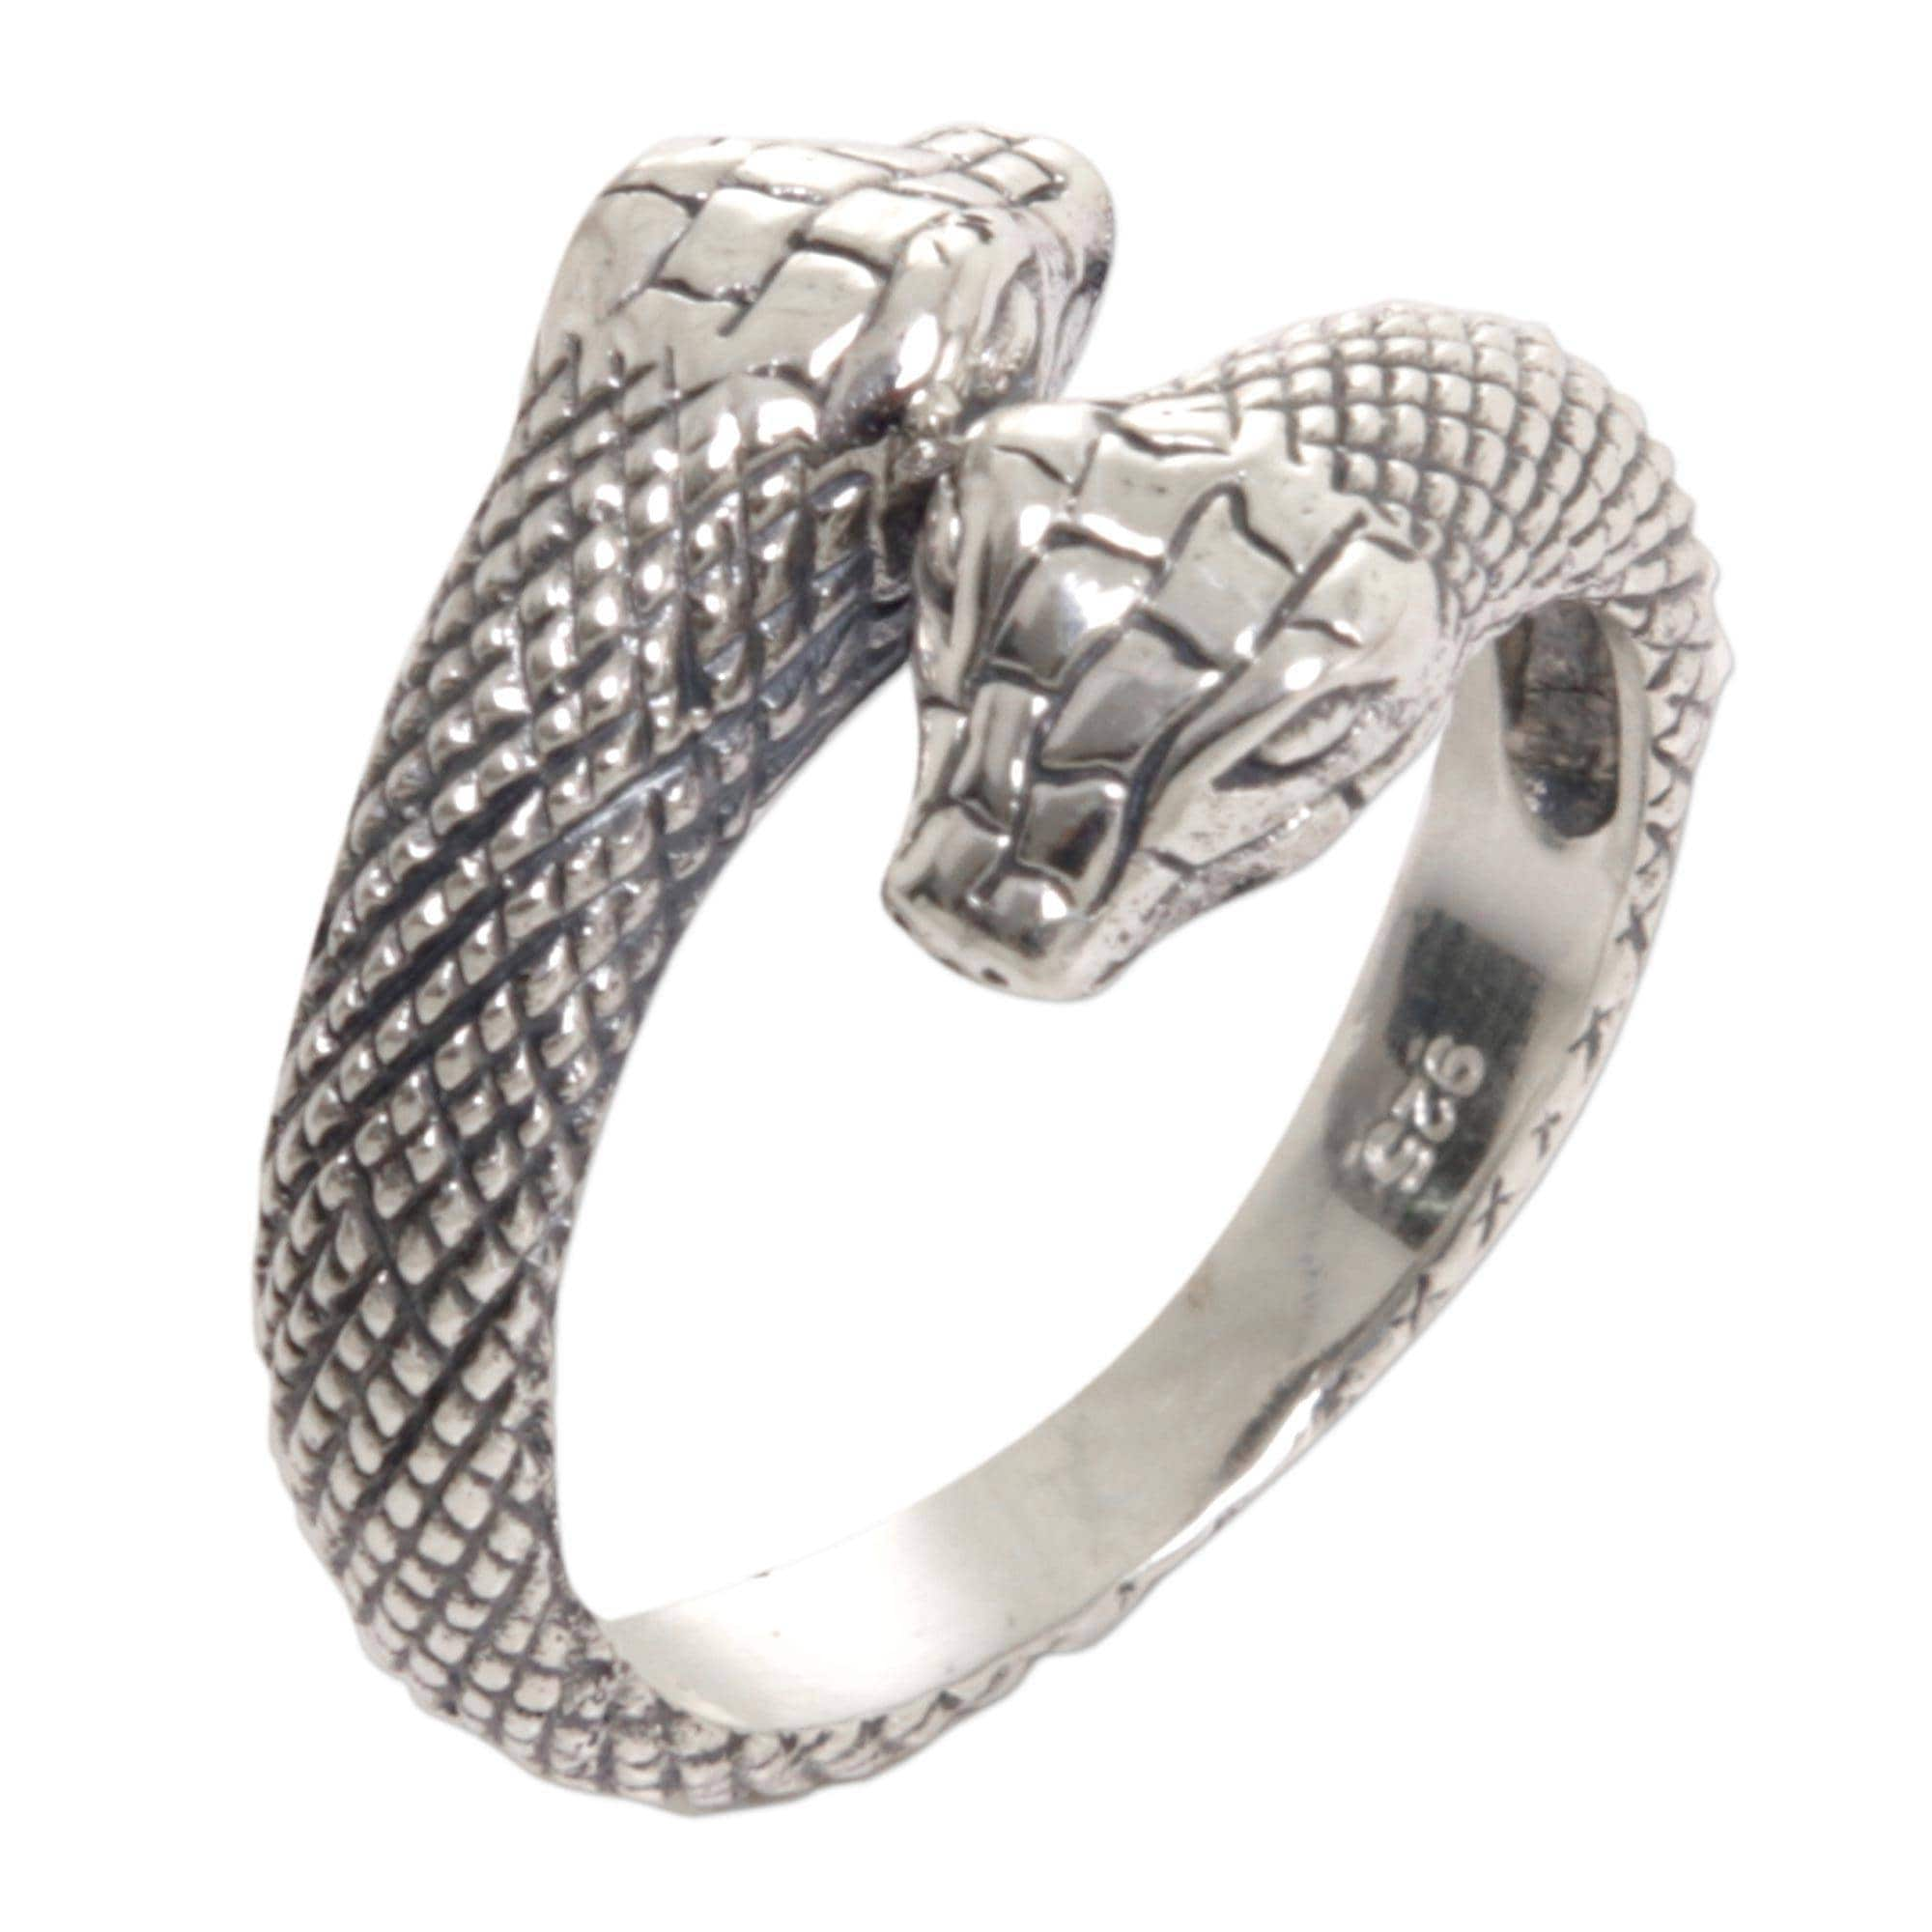 snakes serpent rattle tail ouroboros sweet double products snake ring rings img